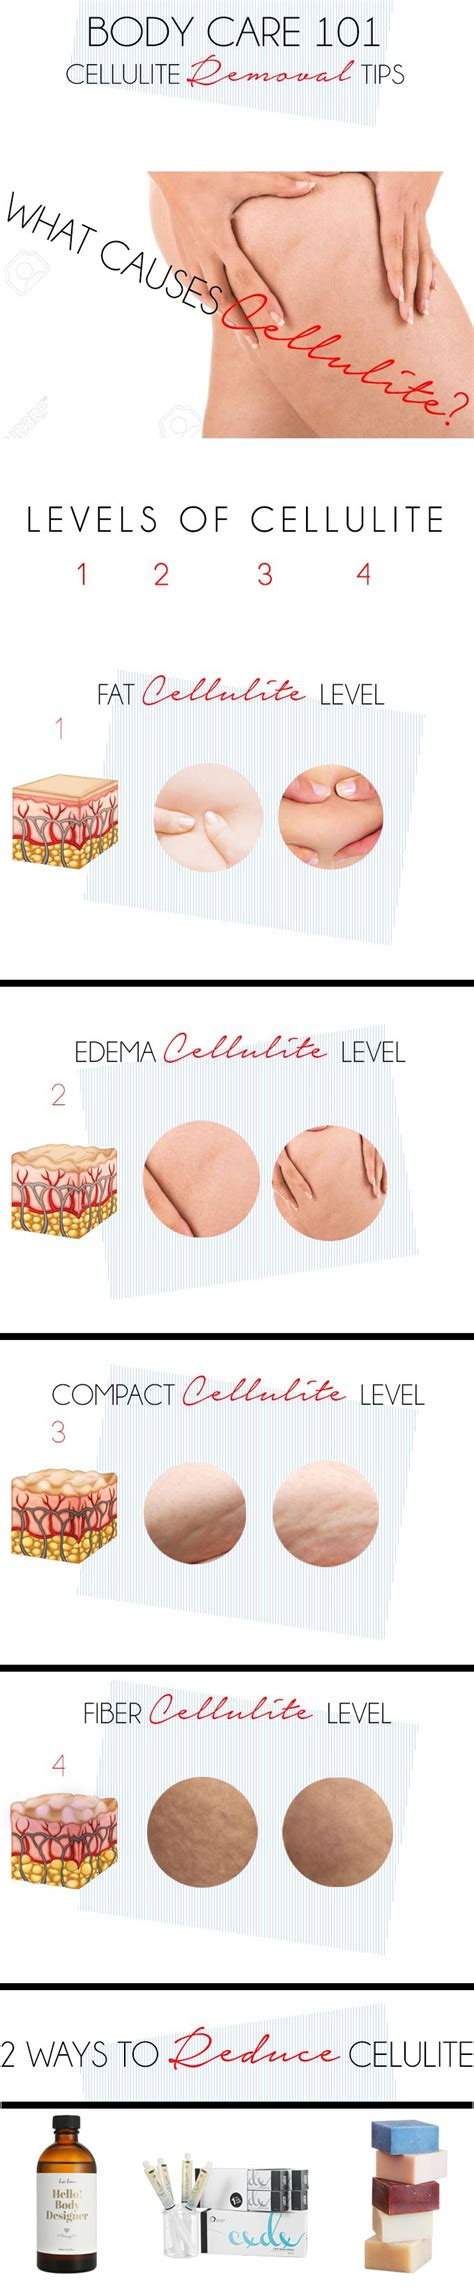 Cellulite 101 Treatment by Care 101 Cellulite Removal Tips Home At Home And